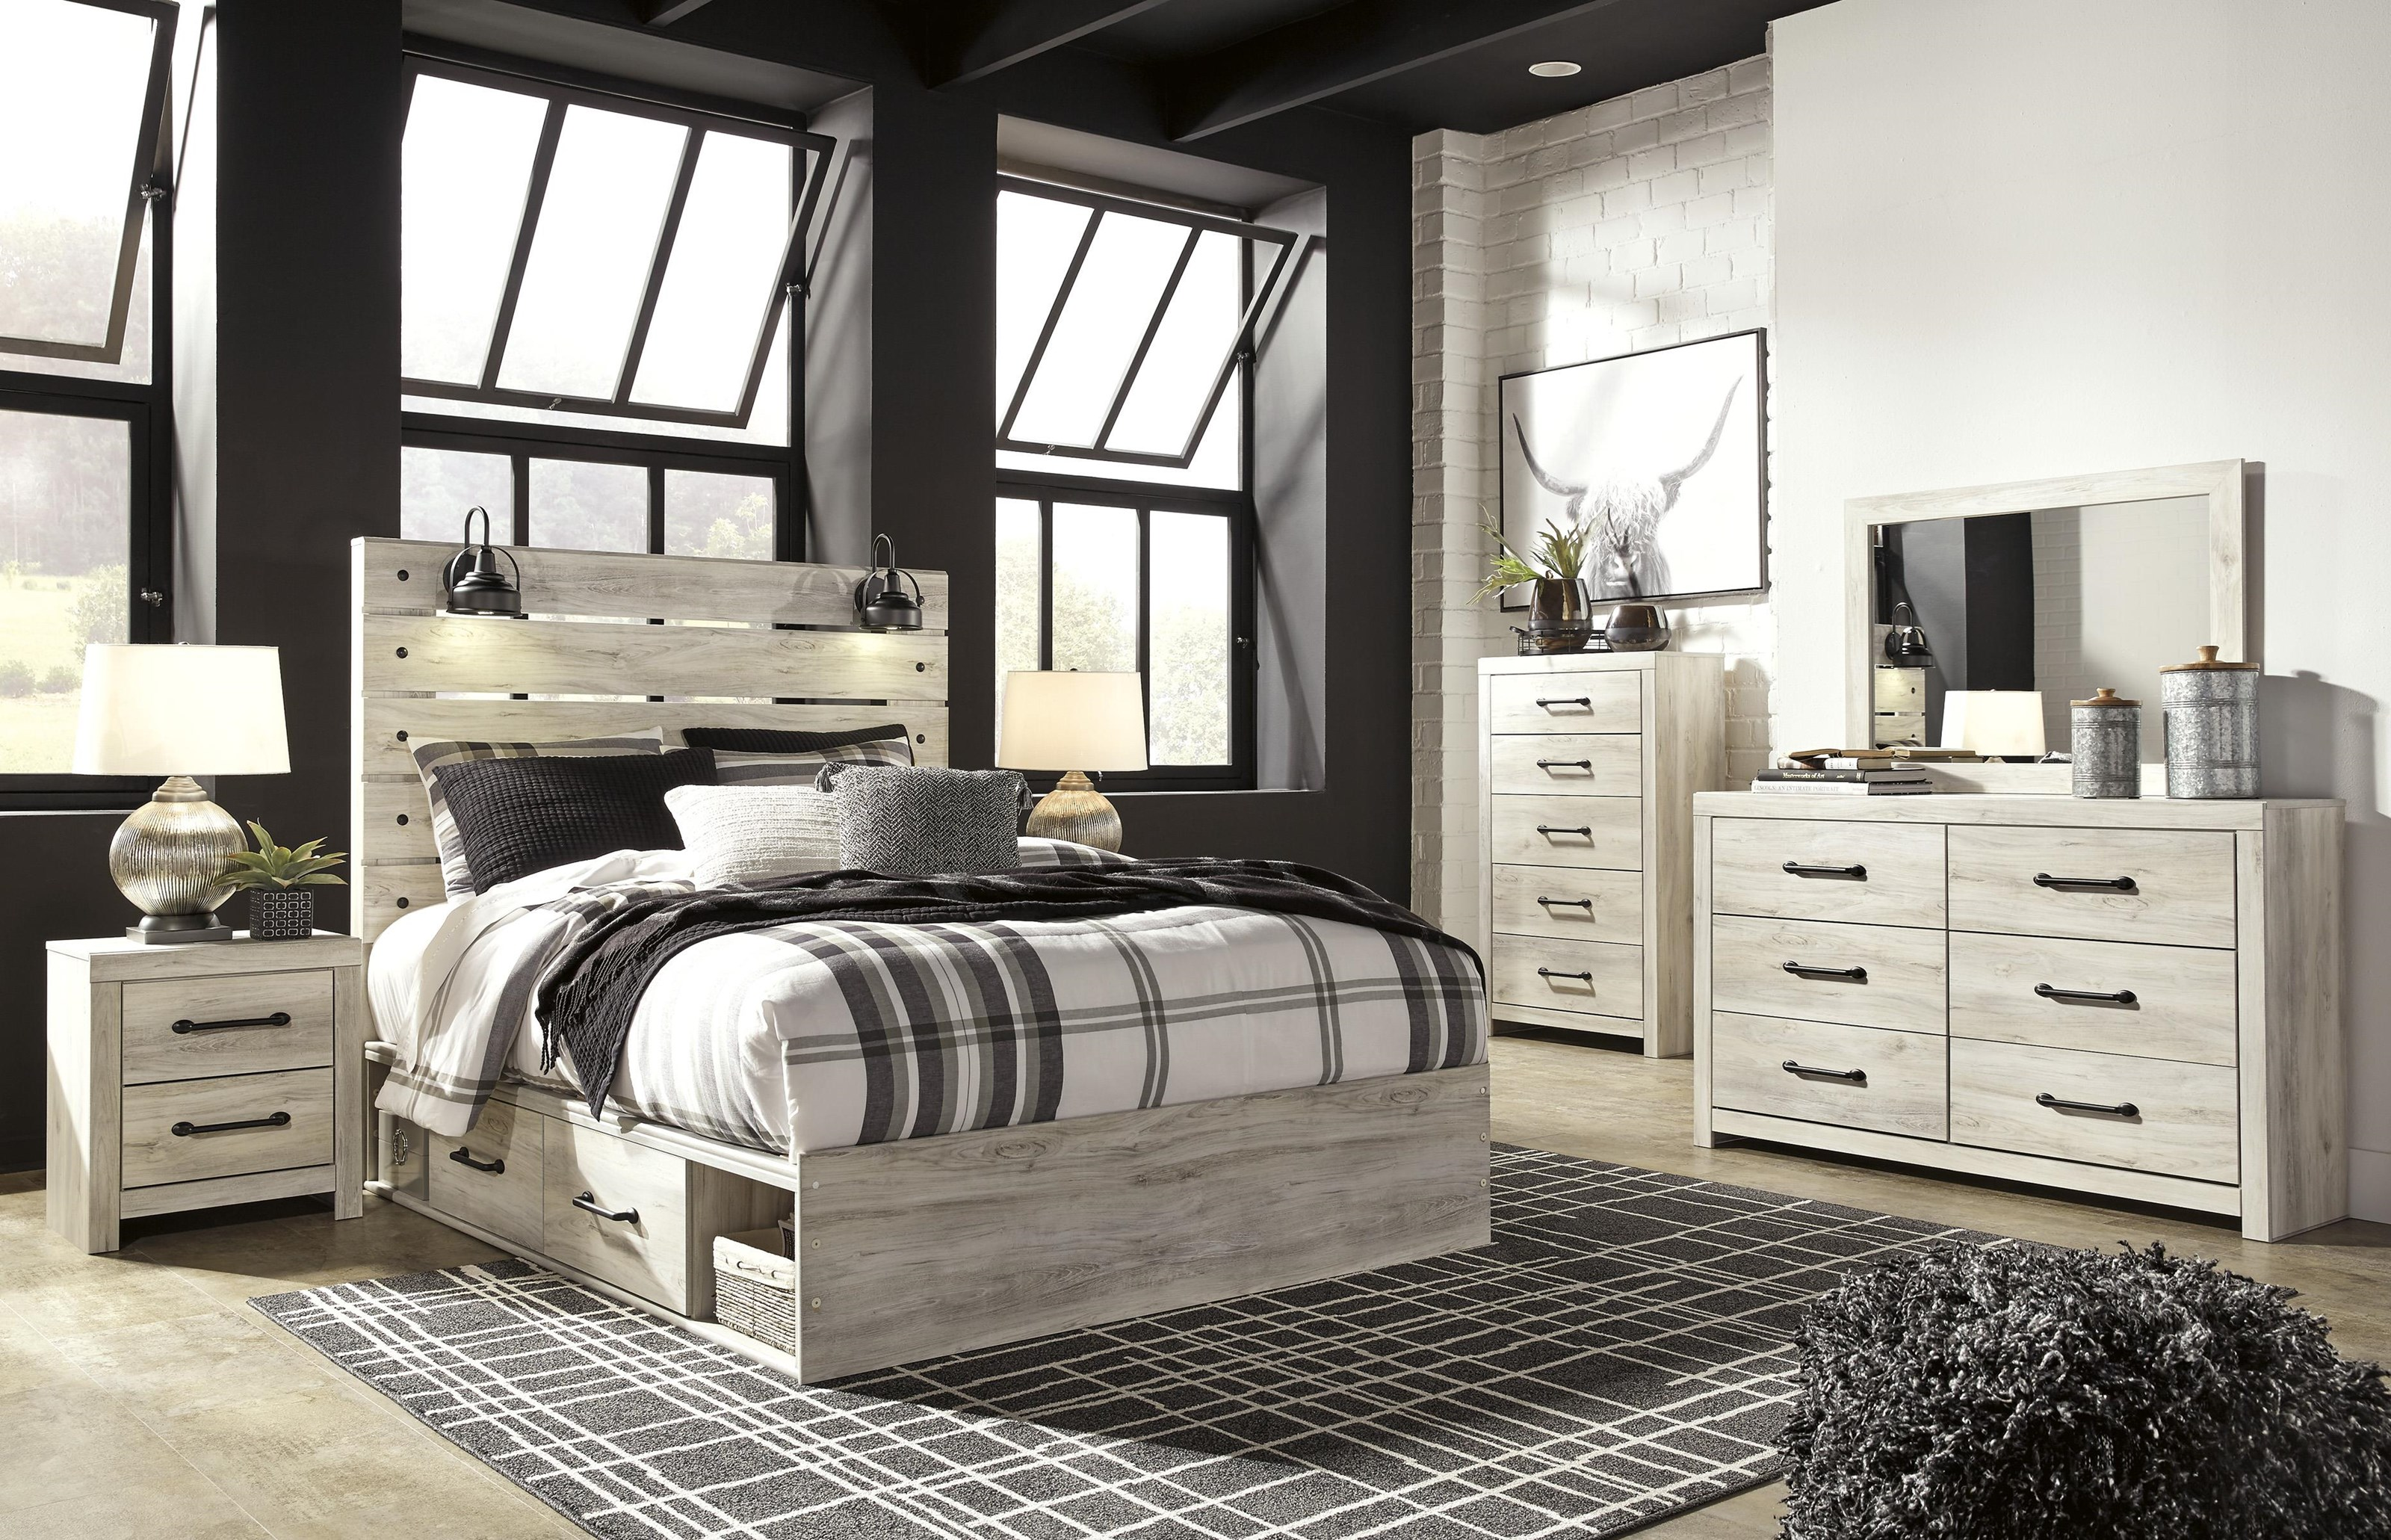 Cambeck 7 Piece Queen Panel Bedroom Set by Signature Design by Ashley at Sam Levitz Furniture